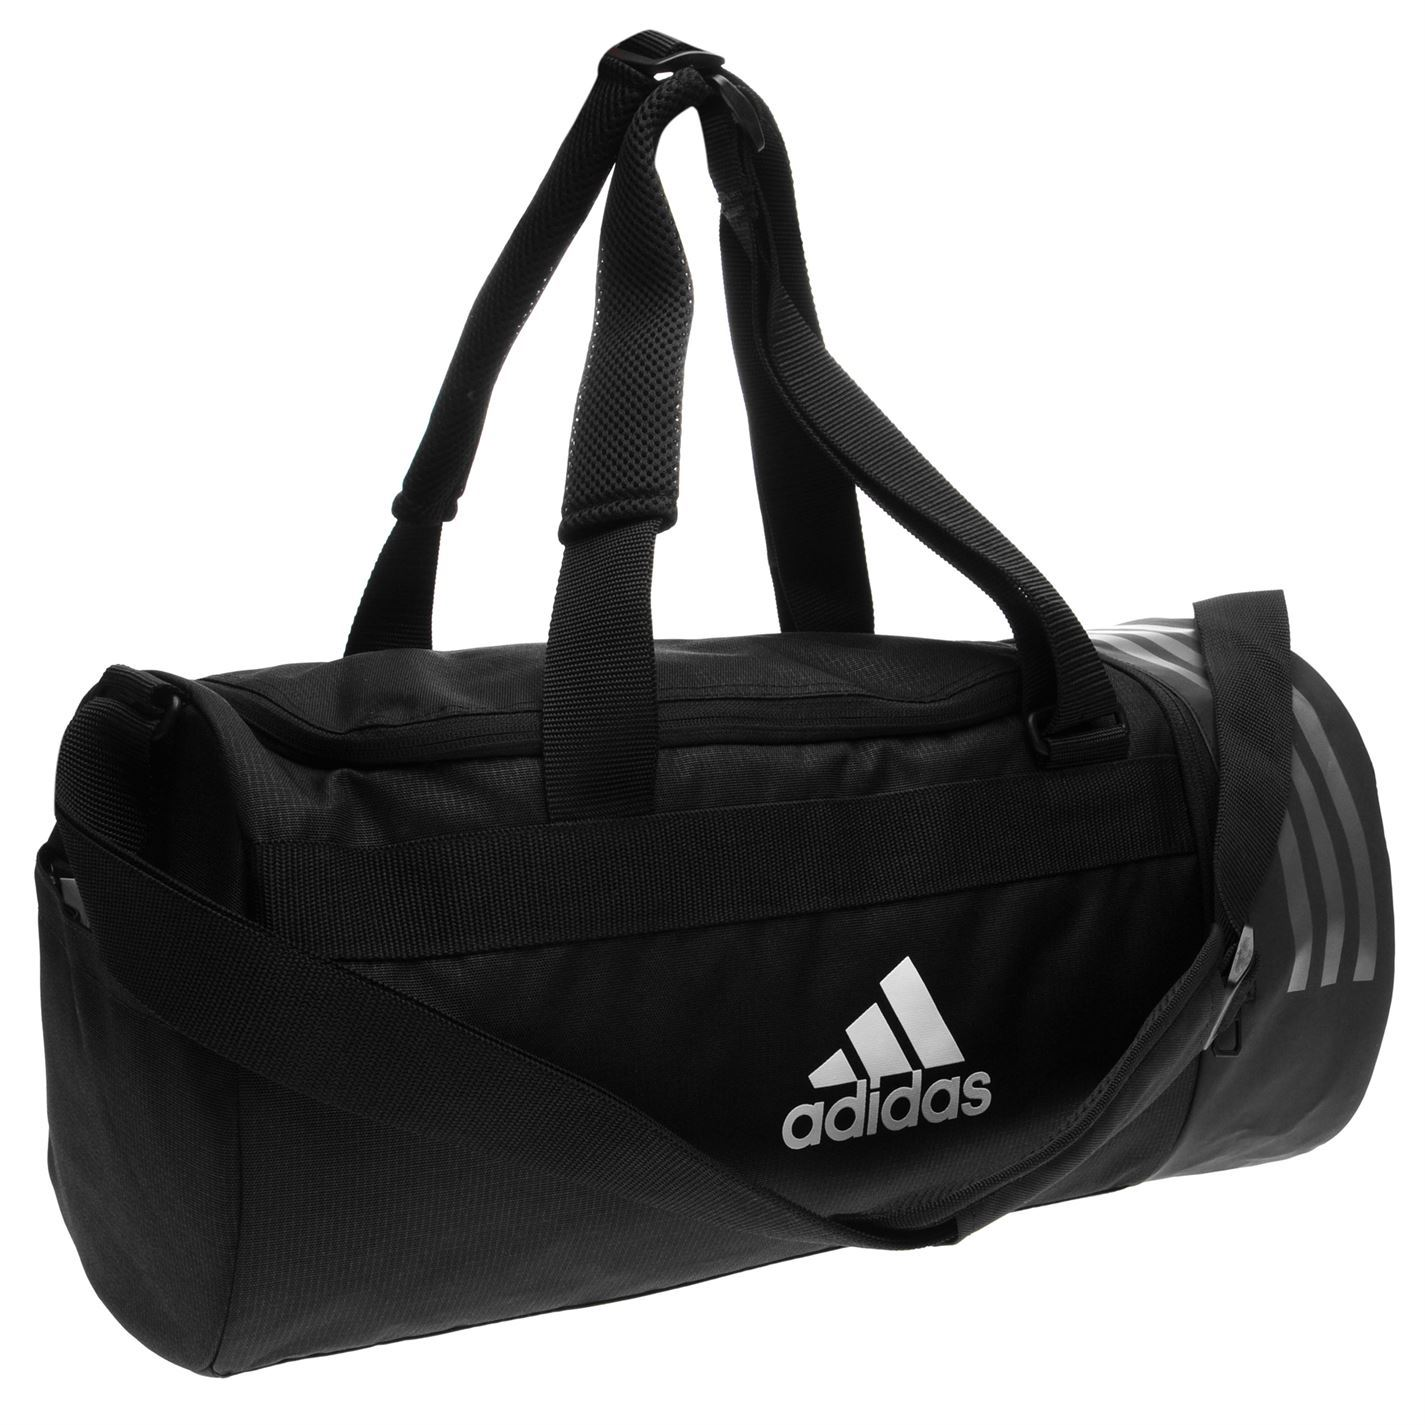 e99f33a39ff2 ... adidas Team Bags Sports Duffle Bag Holdall Carryall Gymbag ...